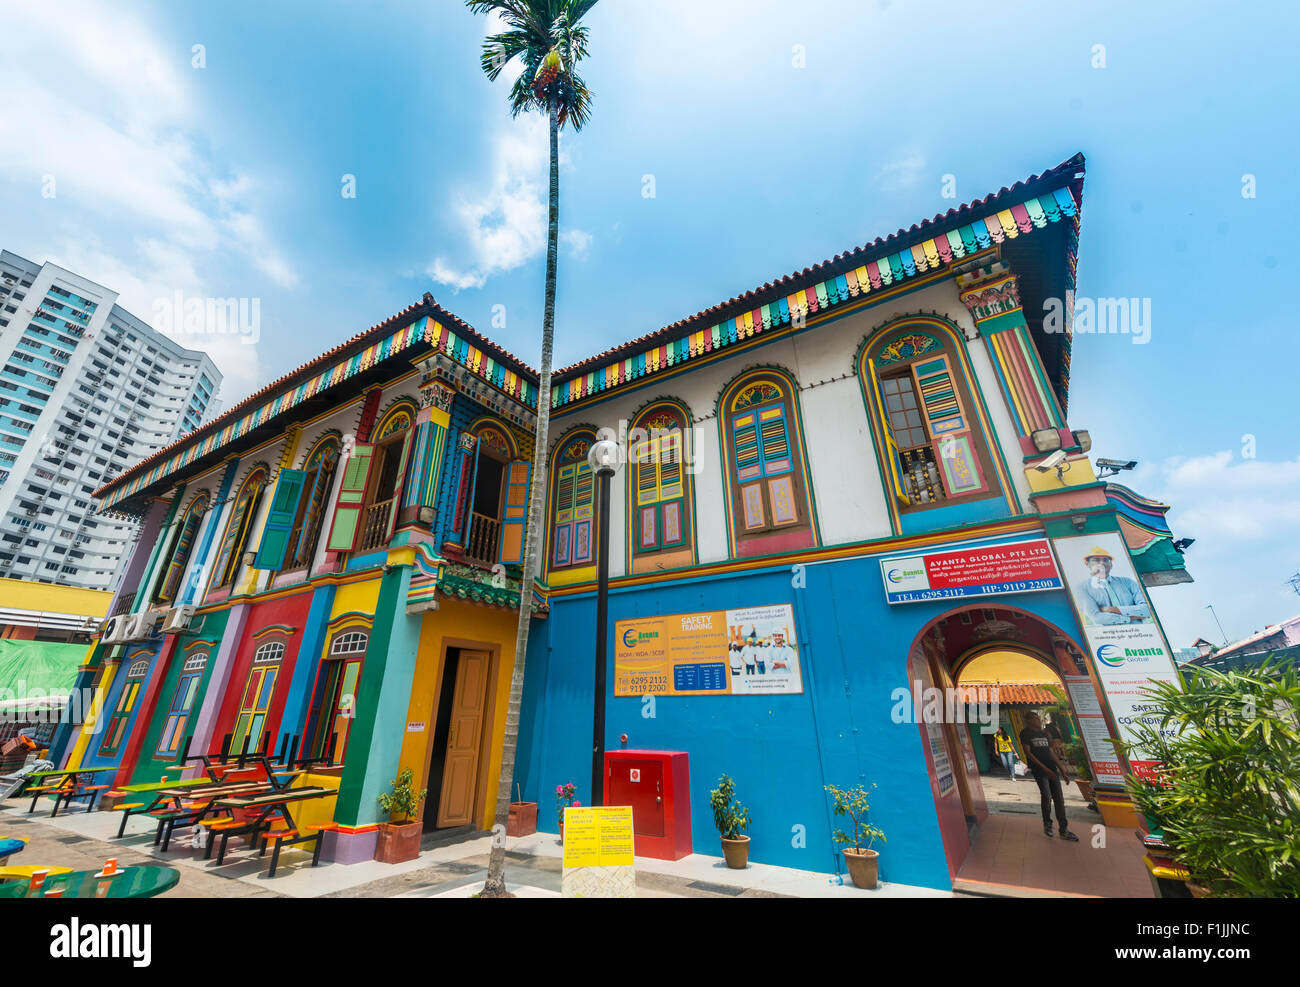 Ancient Chinese Villa, the house of Tan Teng Niah, Indian district of Little India, Singapore - Stock Image